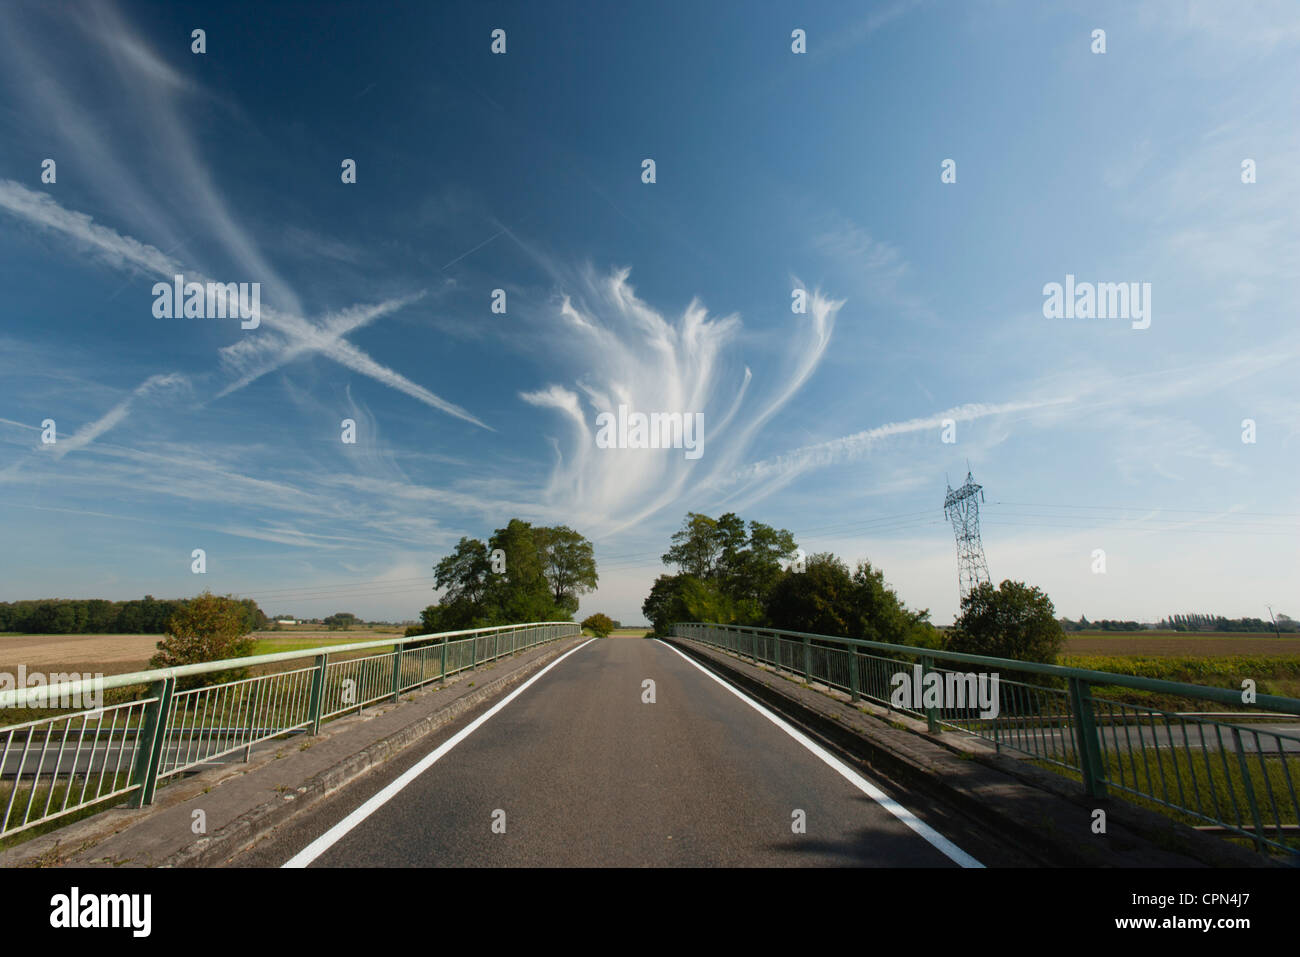 Whispy clouds and vapor trails in sky over bridge - Stock Image